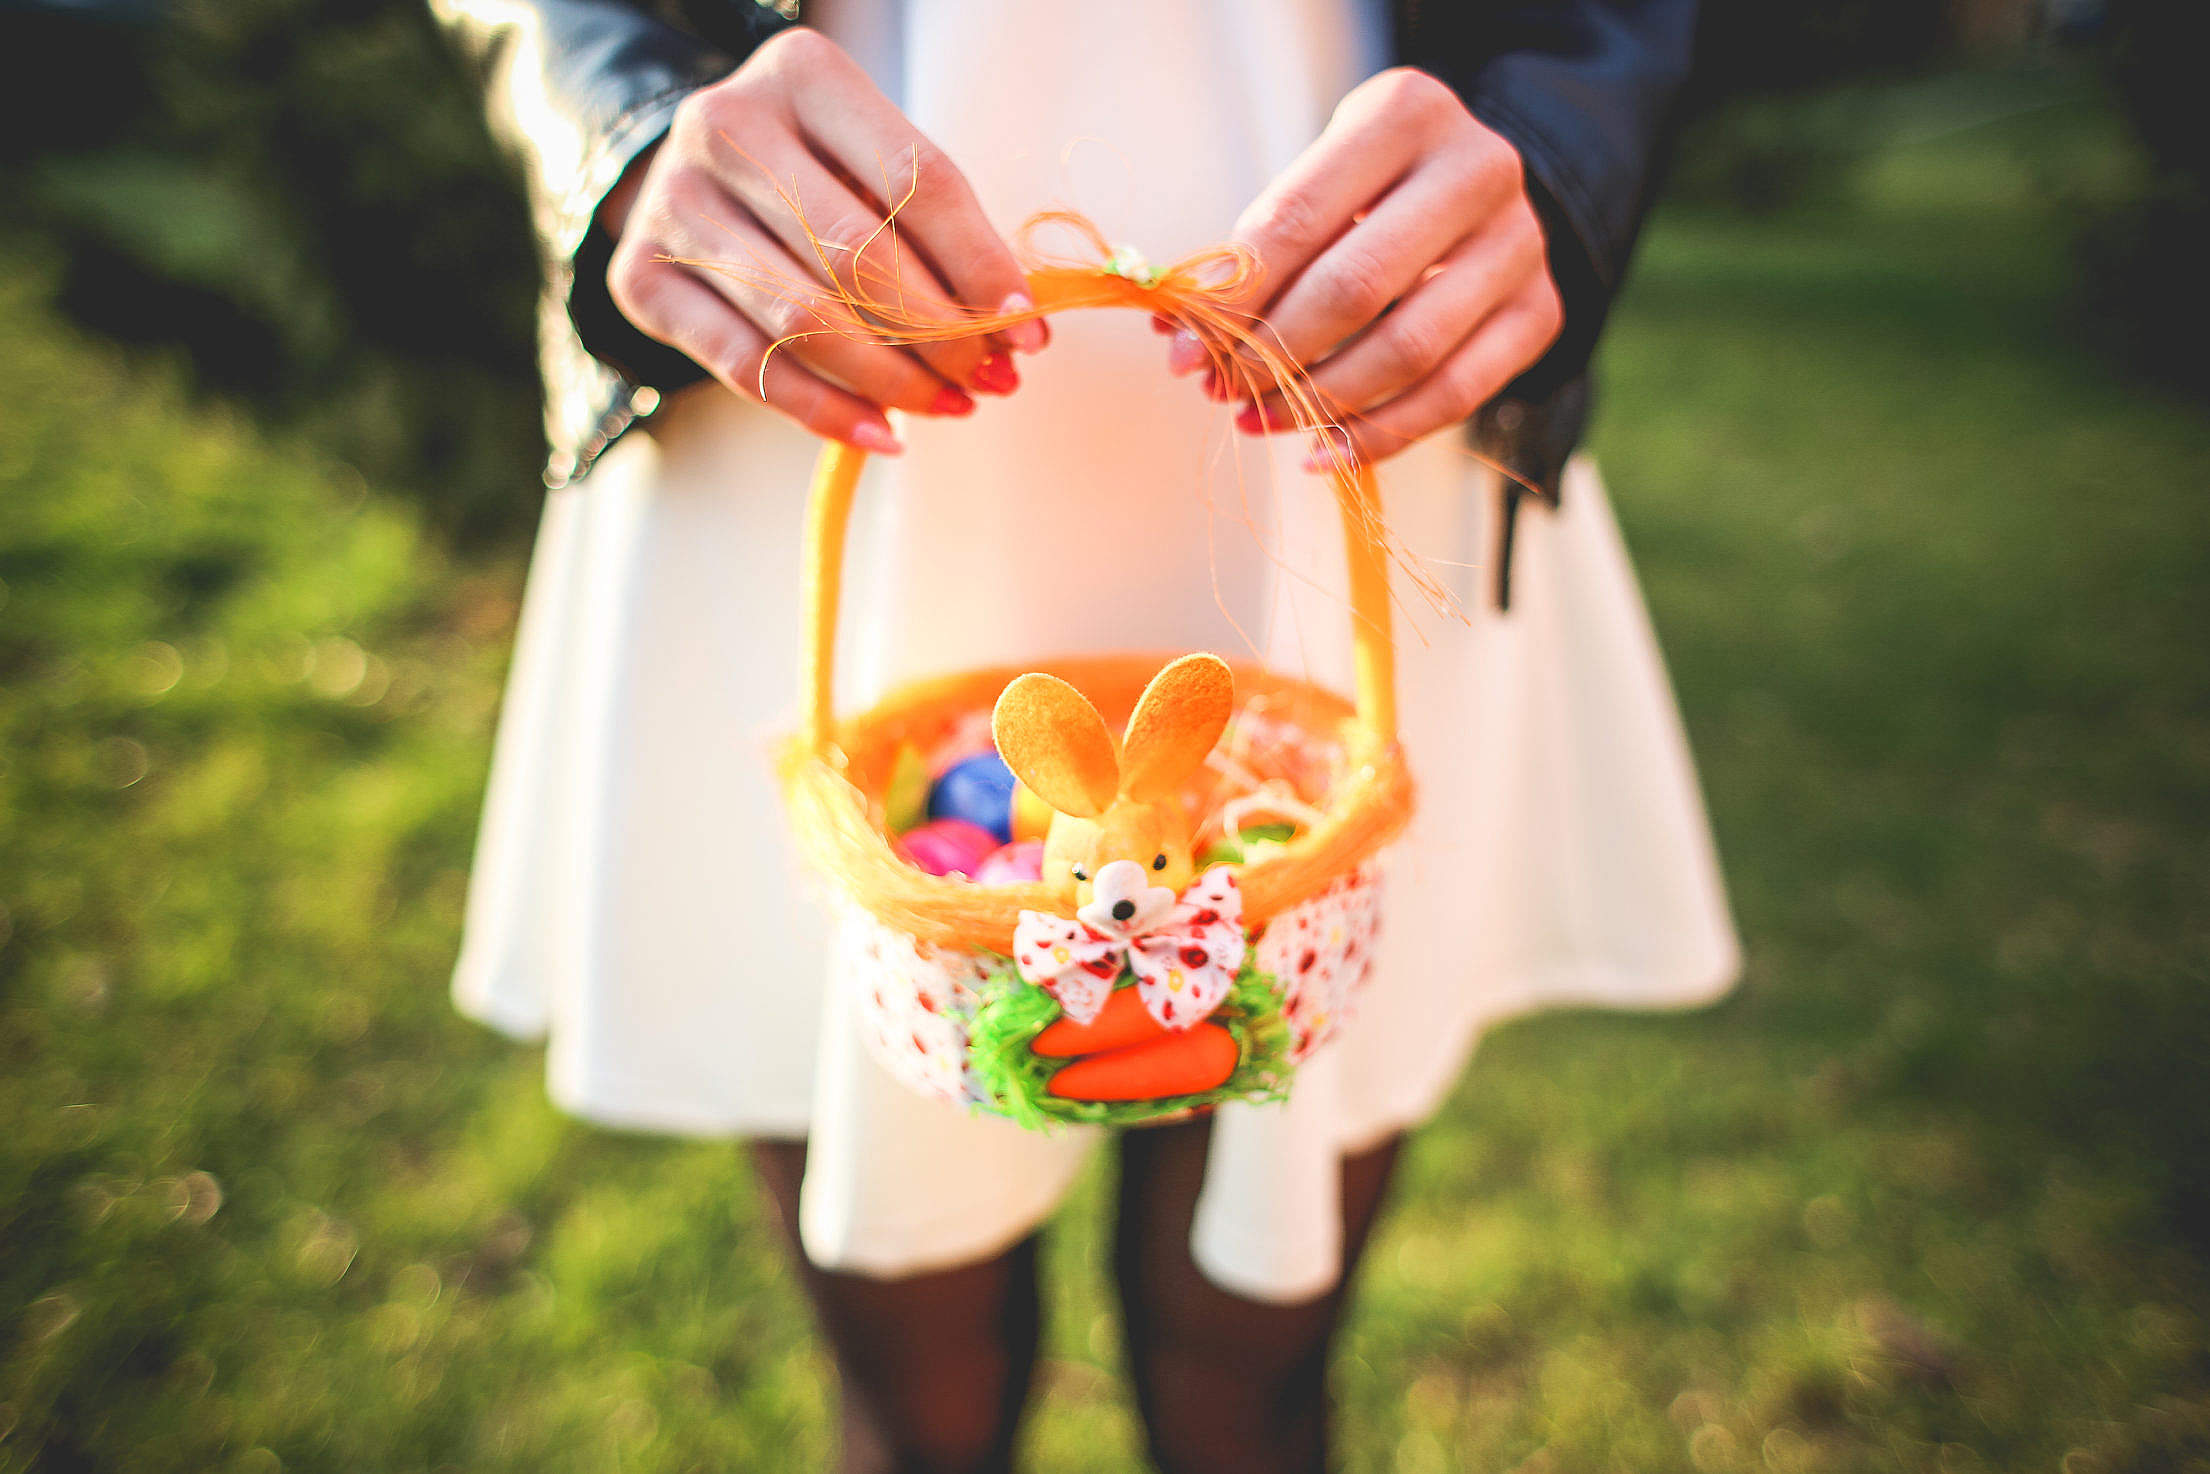 Girl Holding Basket with Colored Easter Eggs Free Stock Photo